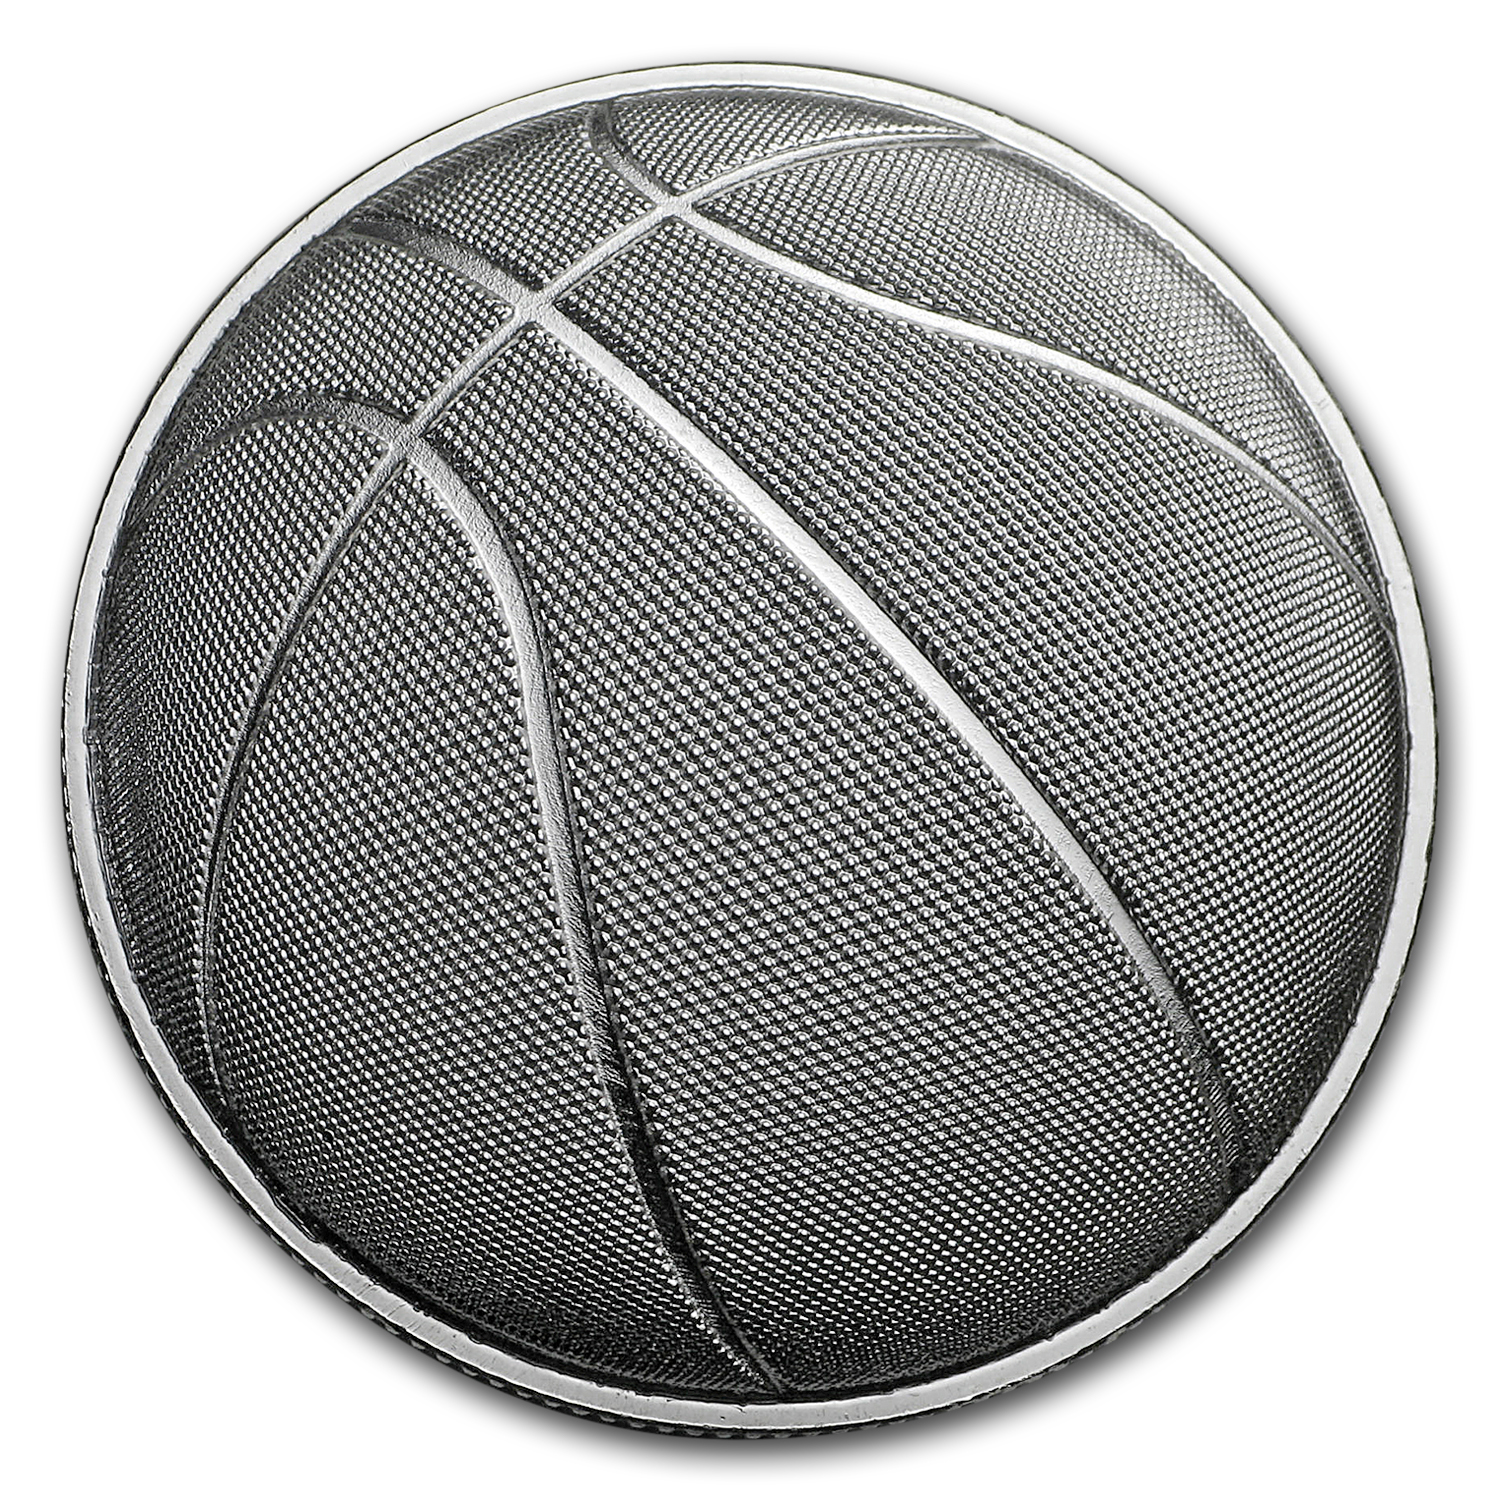 1 oz Silver Round - 2017 Domed Basketball